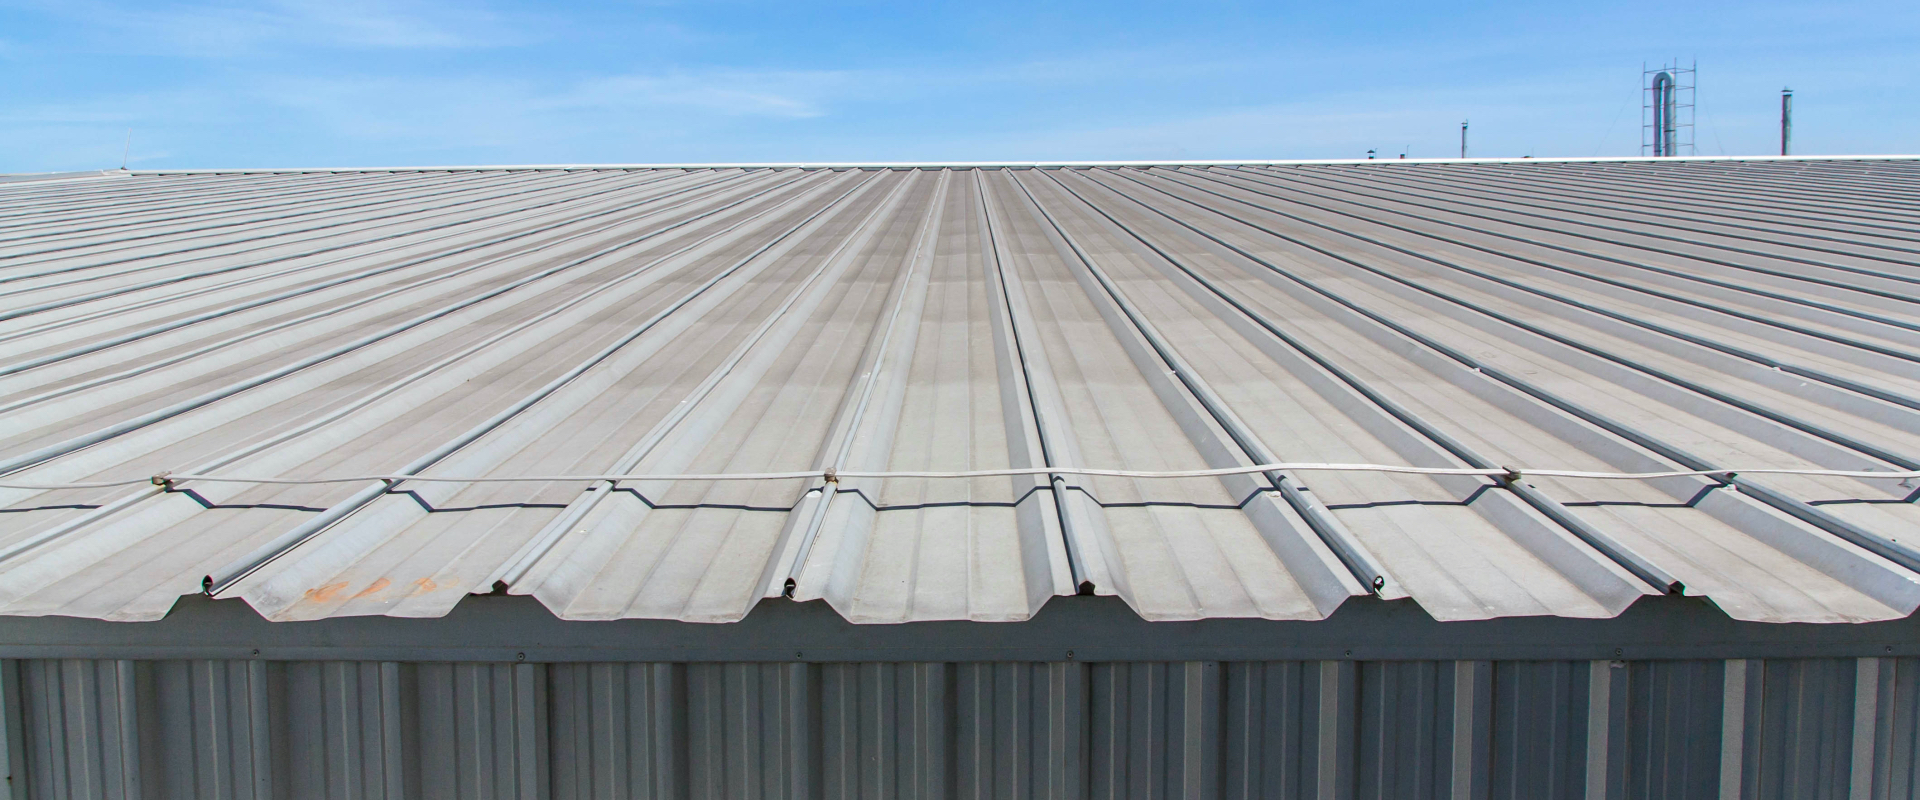 Starting an Industrial Roofing Revolution